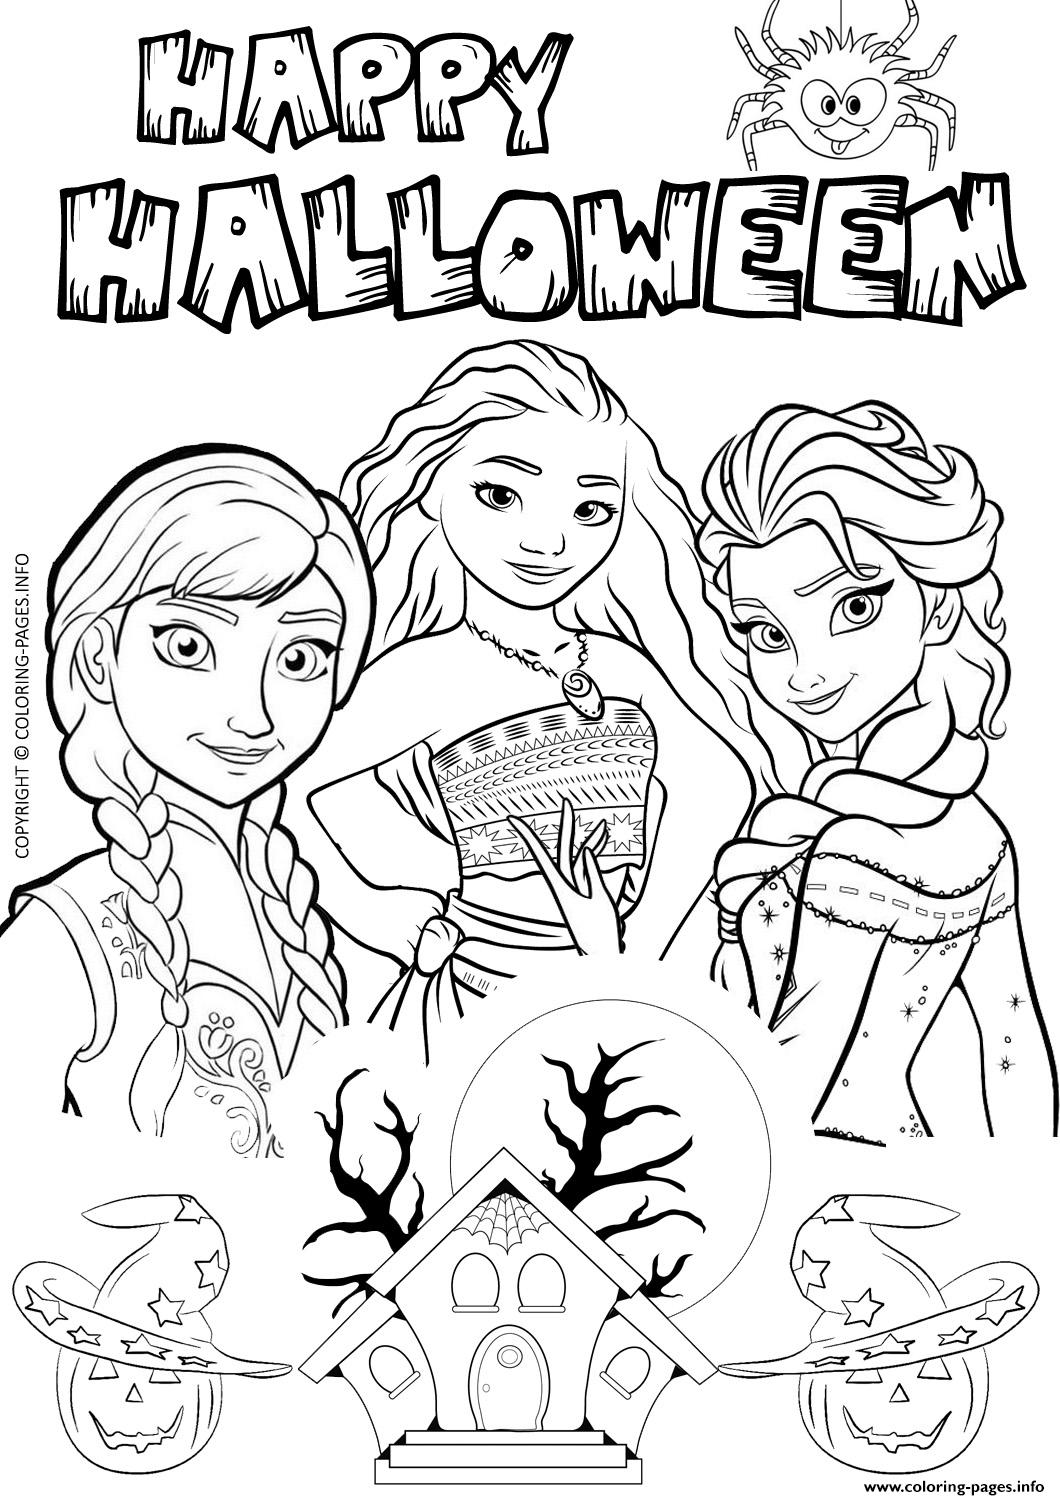 Halloween Frozen Elsa Moana Disney Coloring Pages Printable